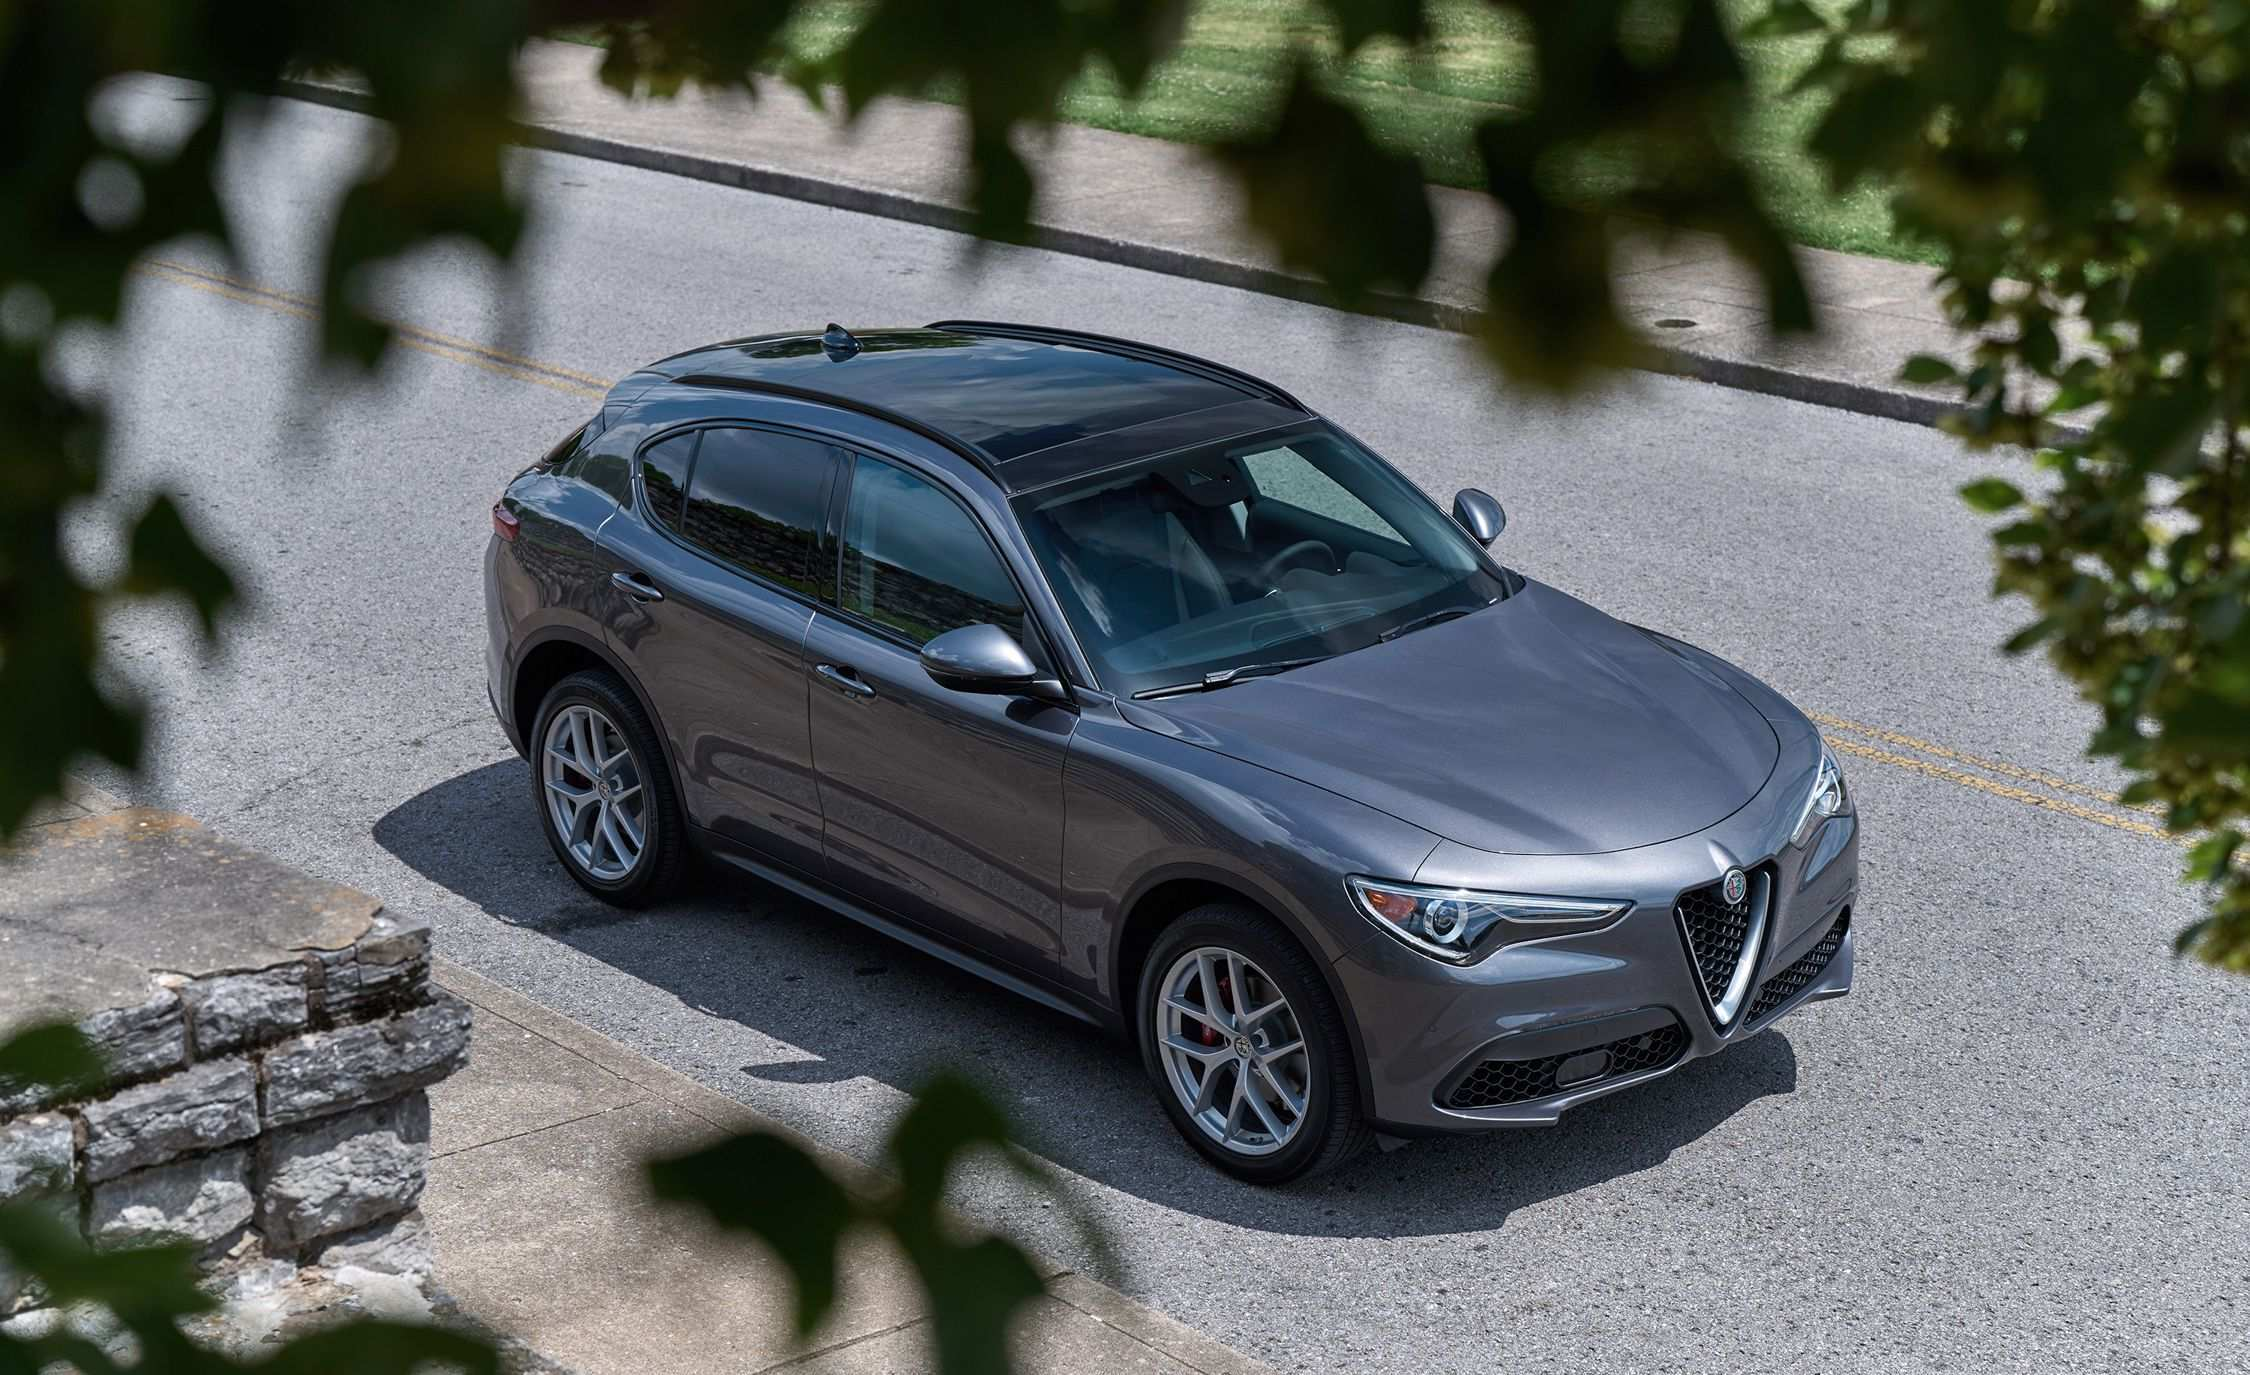 37 New 2019 Alfa Romeo Stelvio Release Date Ratings by 2019 Alfa Romeo Stelvio Release Date